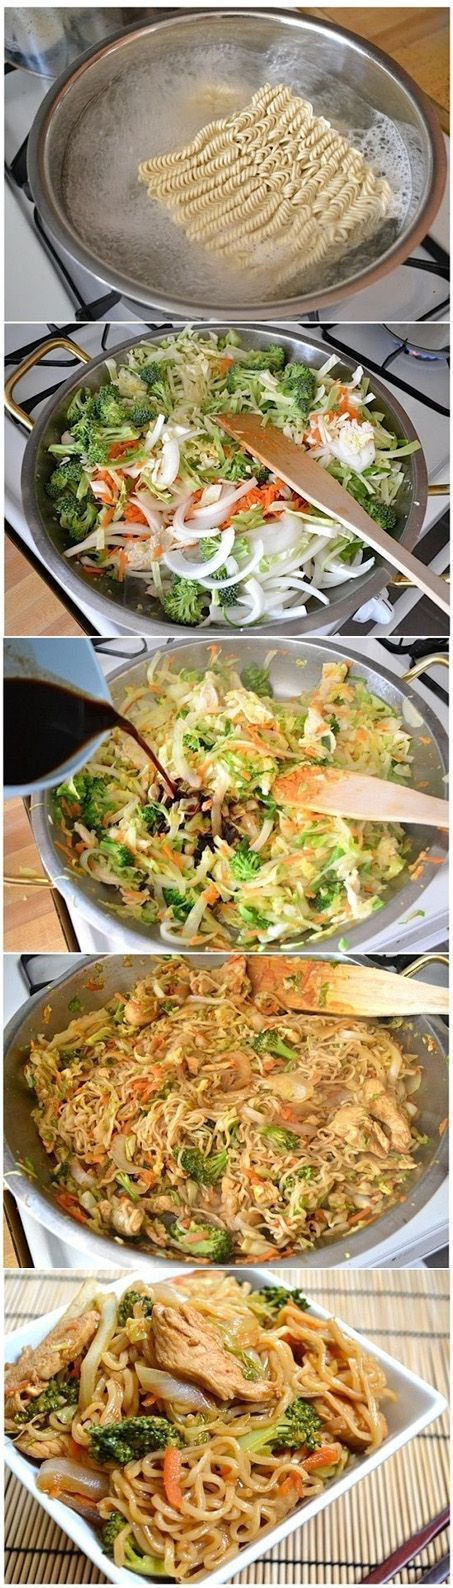 Ingredients ½ head green cabbage 1 medium yellow onion 2 medium carrots 1 small crown broccoli 2 inches fresh ginger 2 Tbsp vegetable oil 2 (3 oz.) packages ramen noodles seasoning packets discarded 1